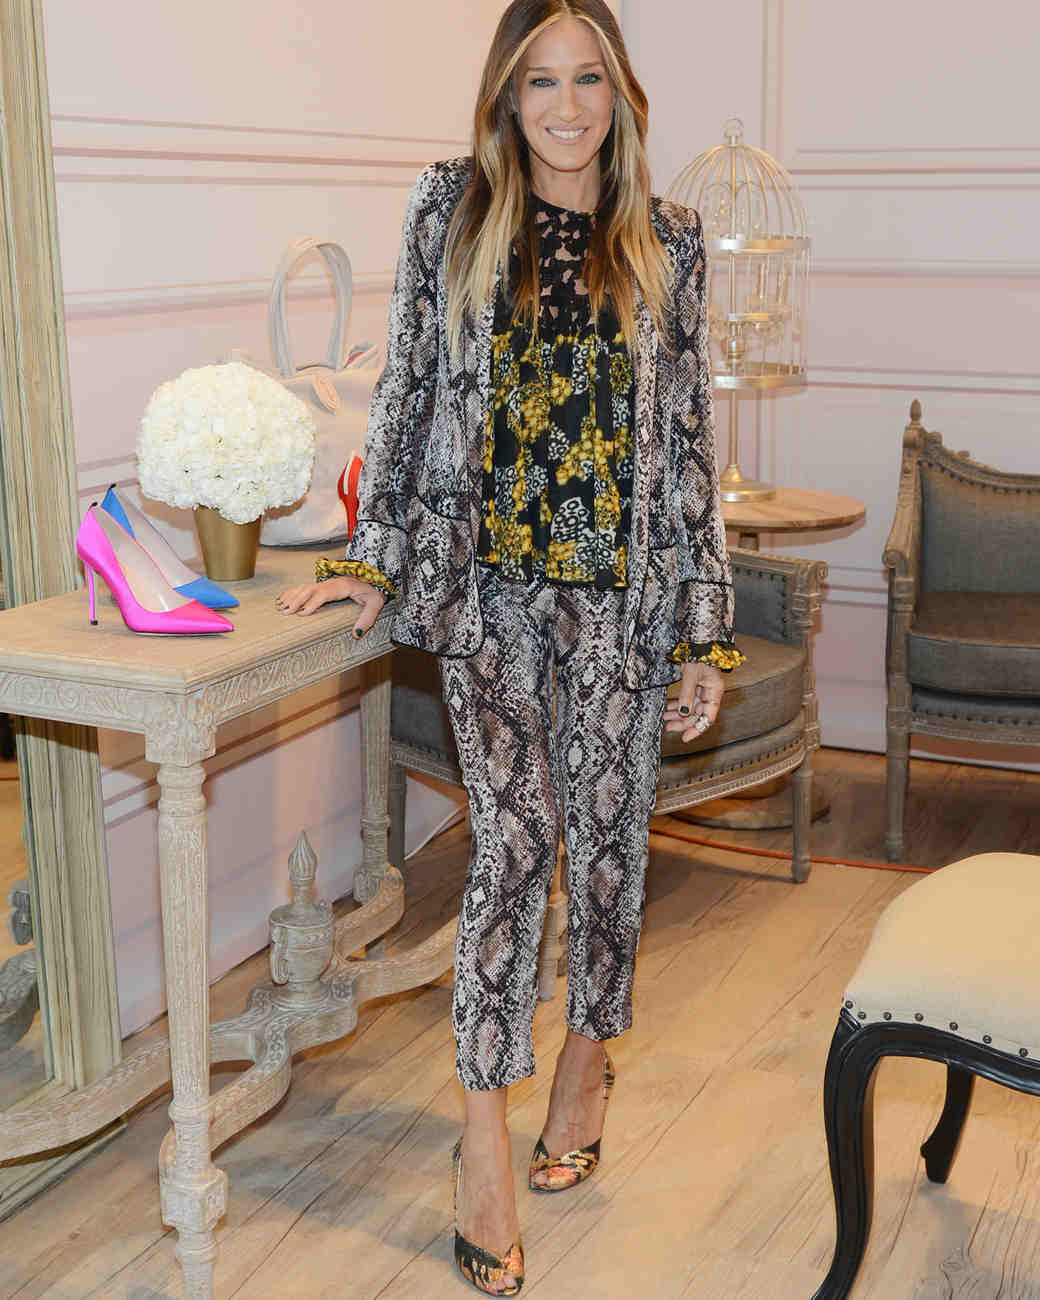 sjp-shoe-roundup-zappos-couture-pop-up-las-vegas-0515.jpg